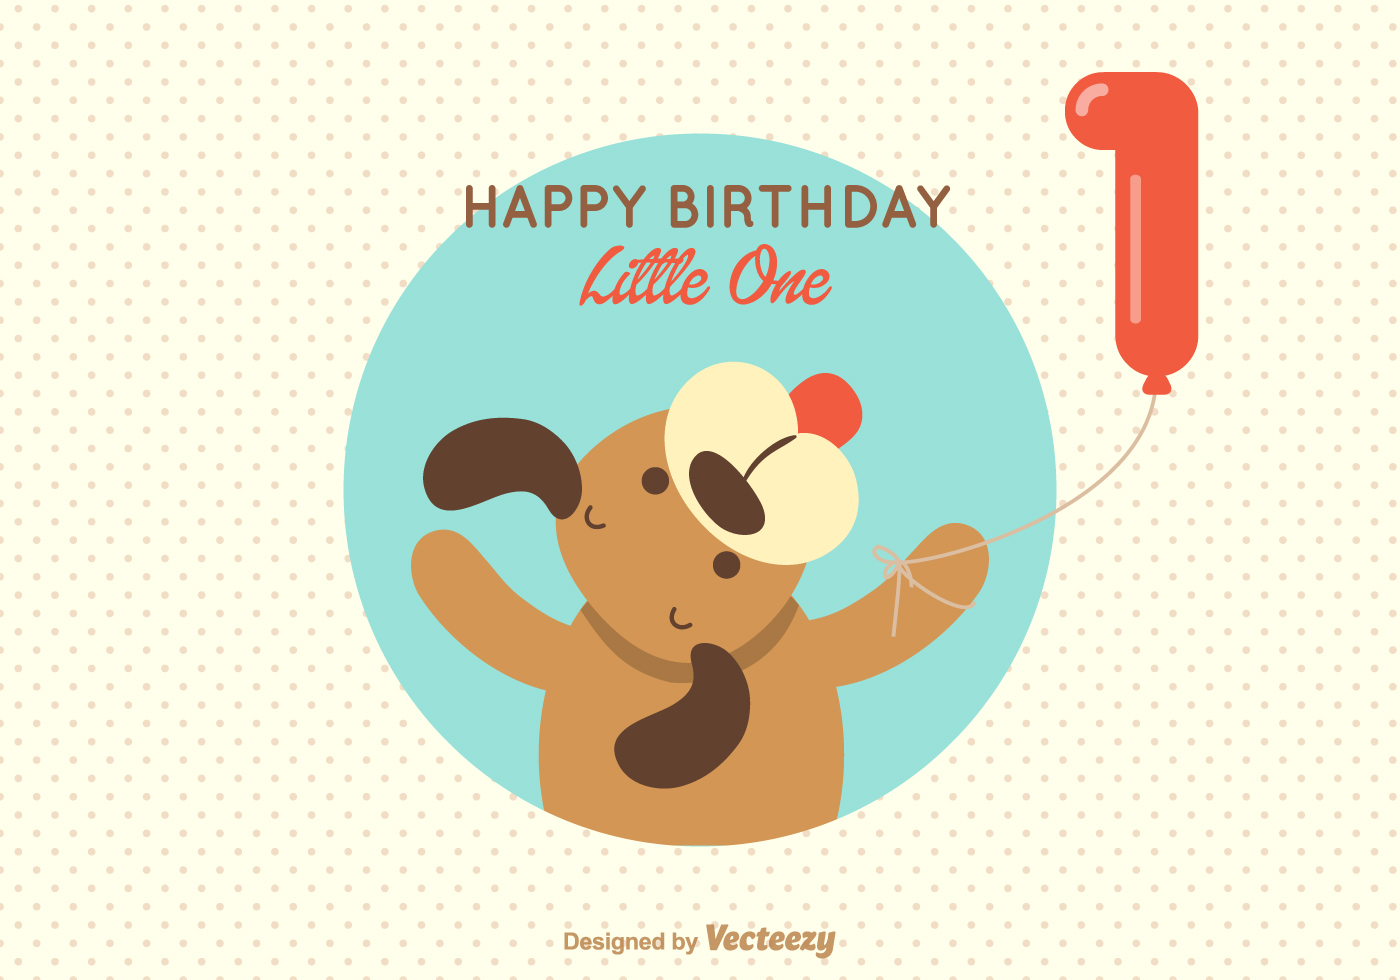 Free puppy 1st birthday greeting vector card download free free puppy 1st birthday greeting vector card download free vector art stock graphics images kristyandbryce Image collections